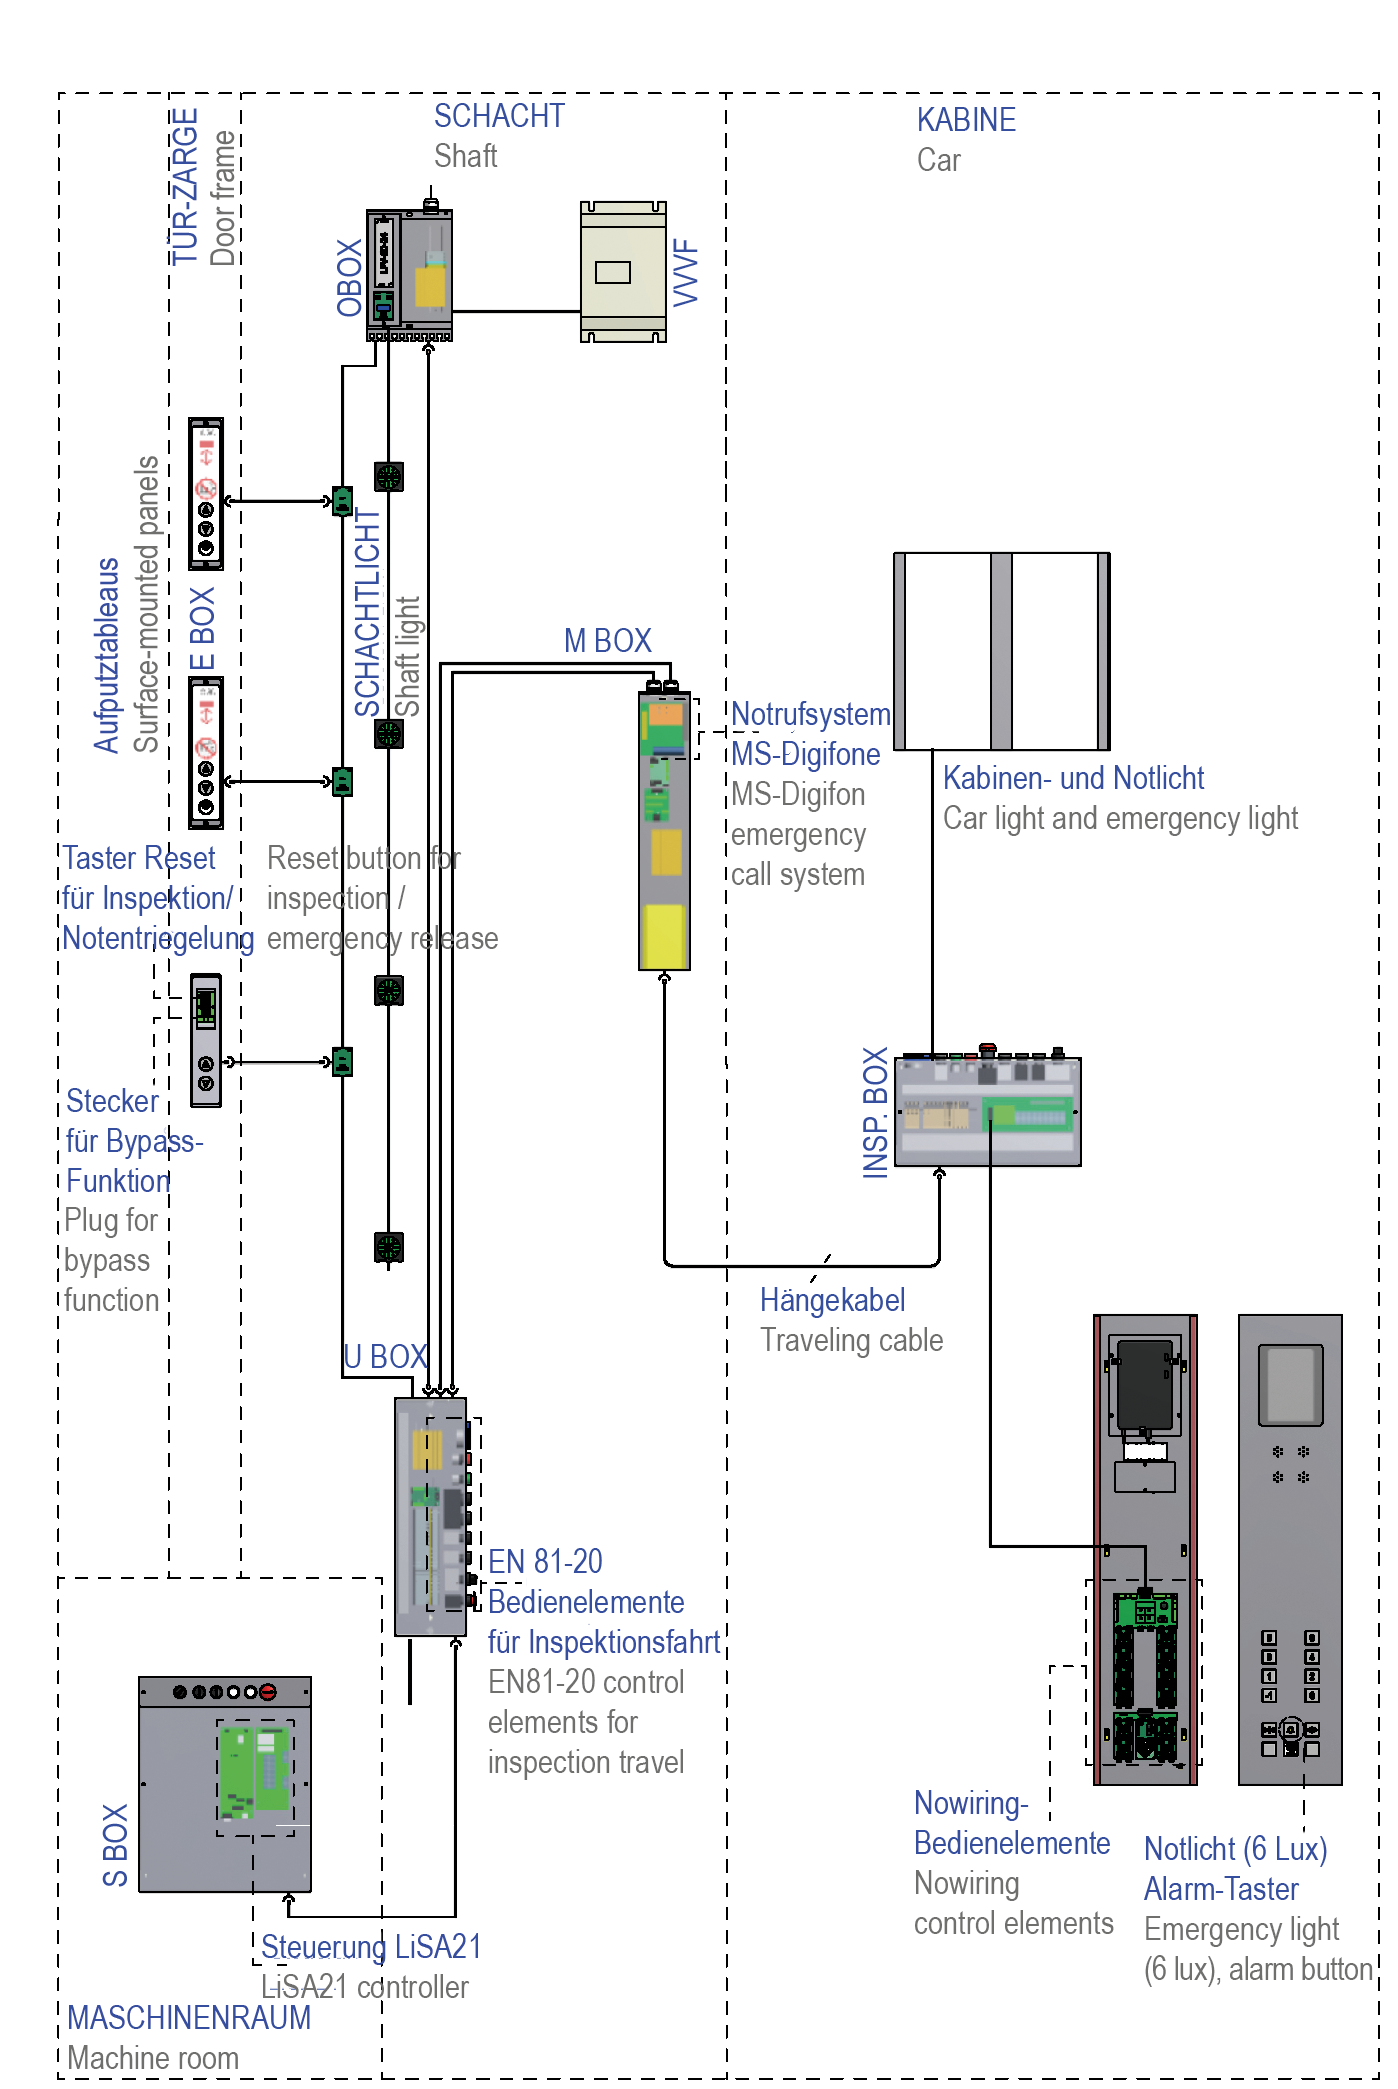 Lift Controllers Schneider Steuerungstechnik Gmbh Elevator Wiring Schematic For Elevators Controller In The Bottom Machine Room Mus